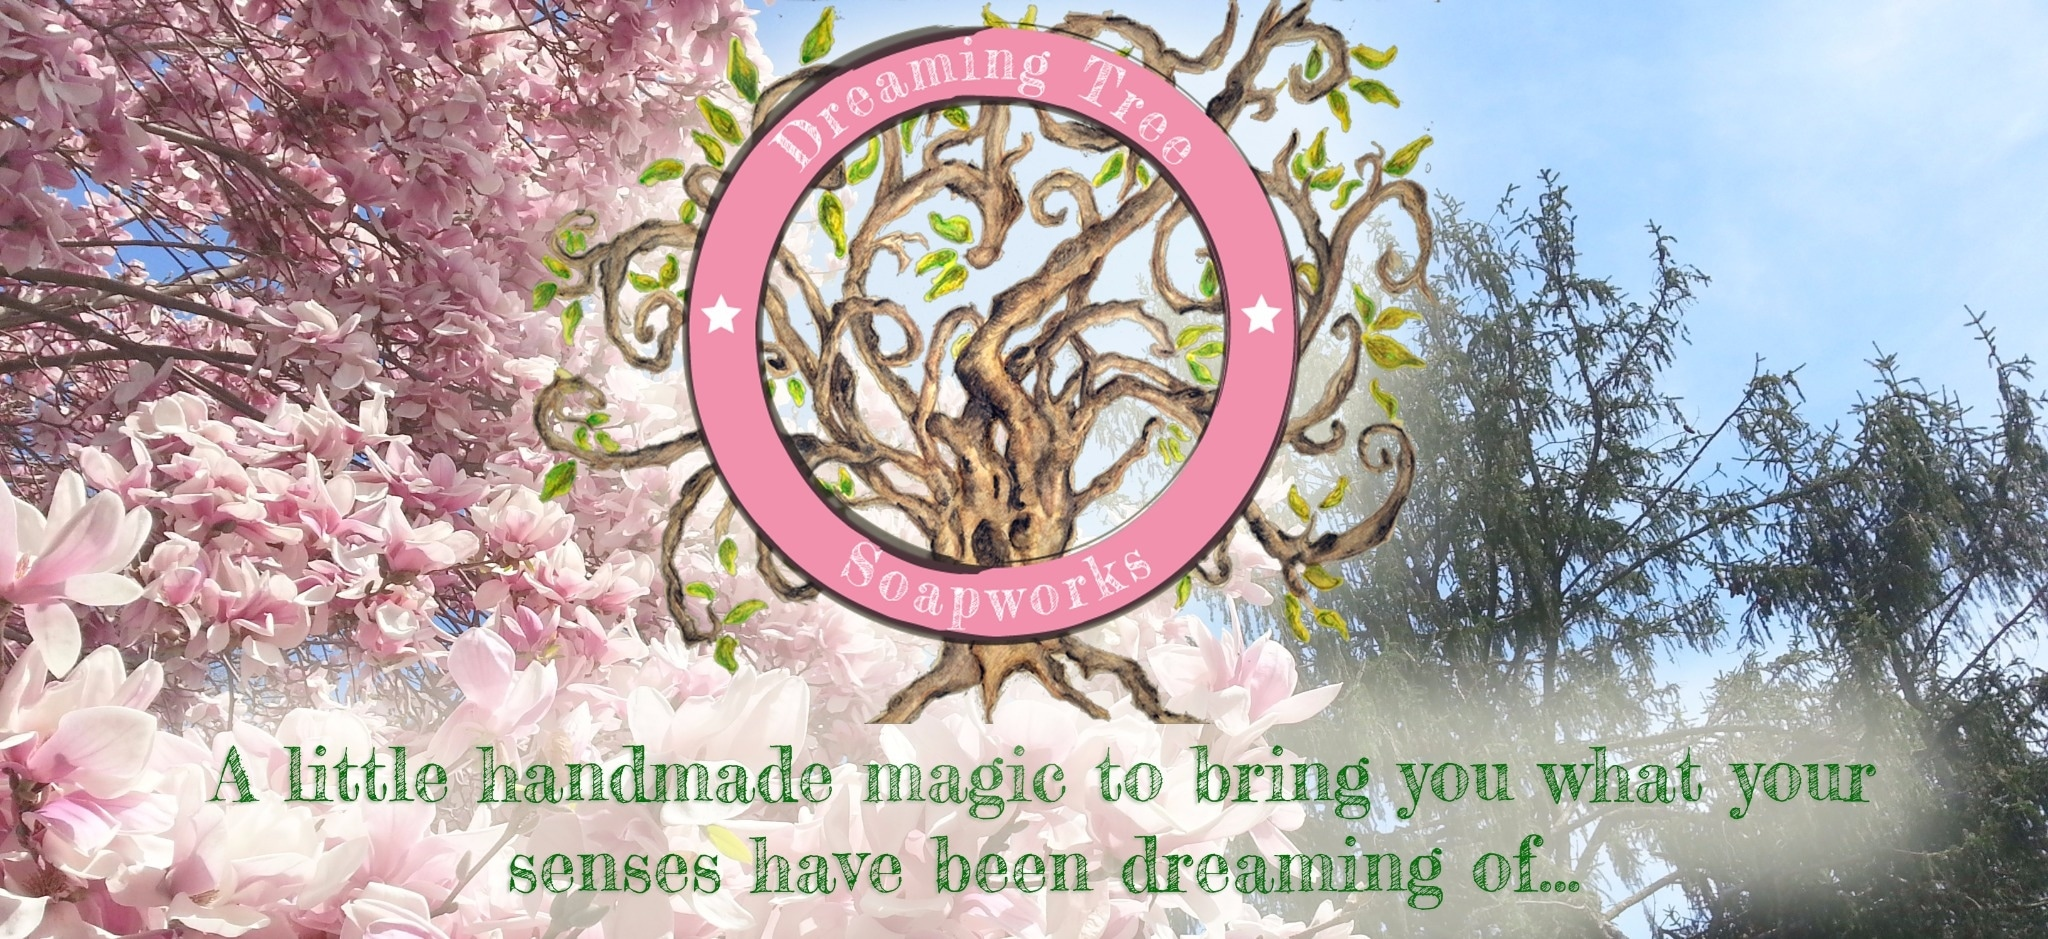 Dreaming Tree Soaps promo codes